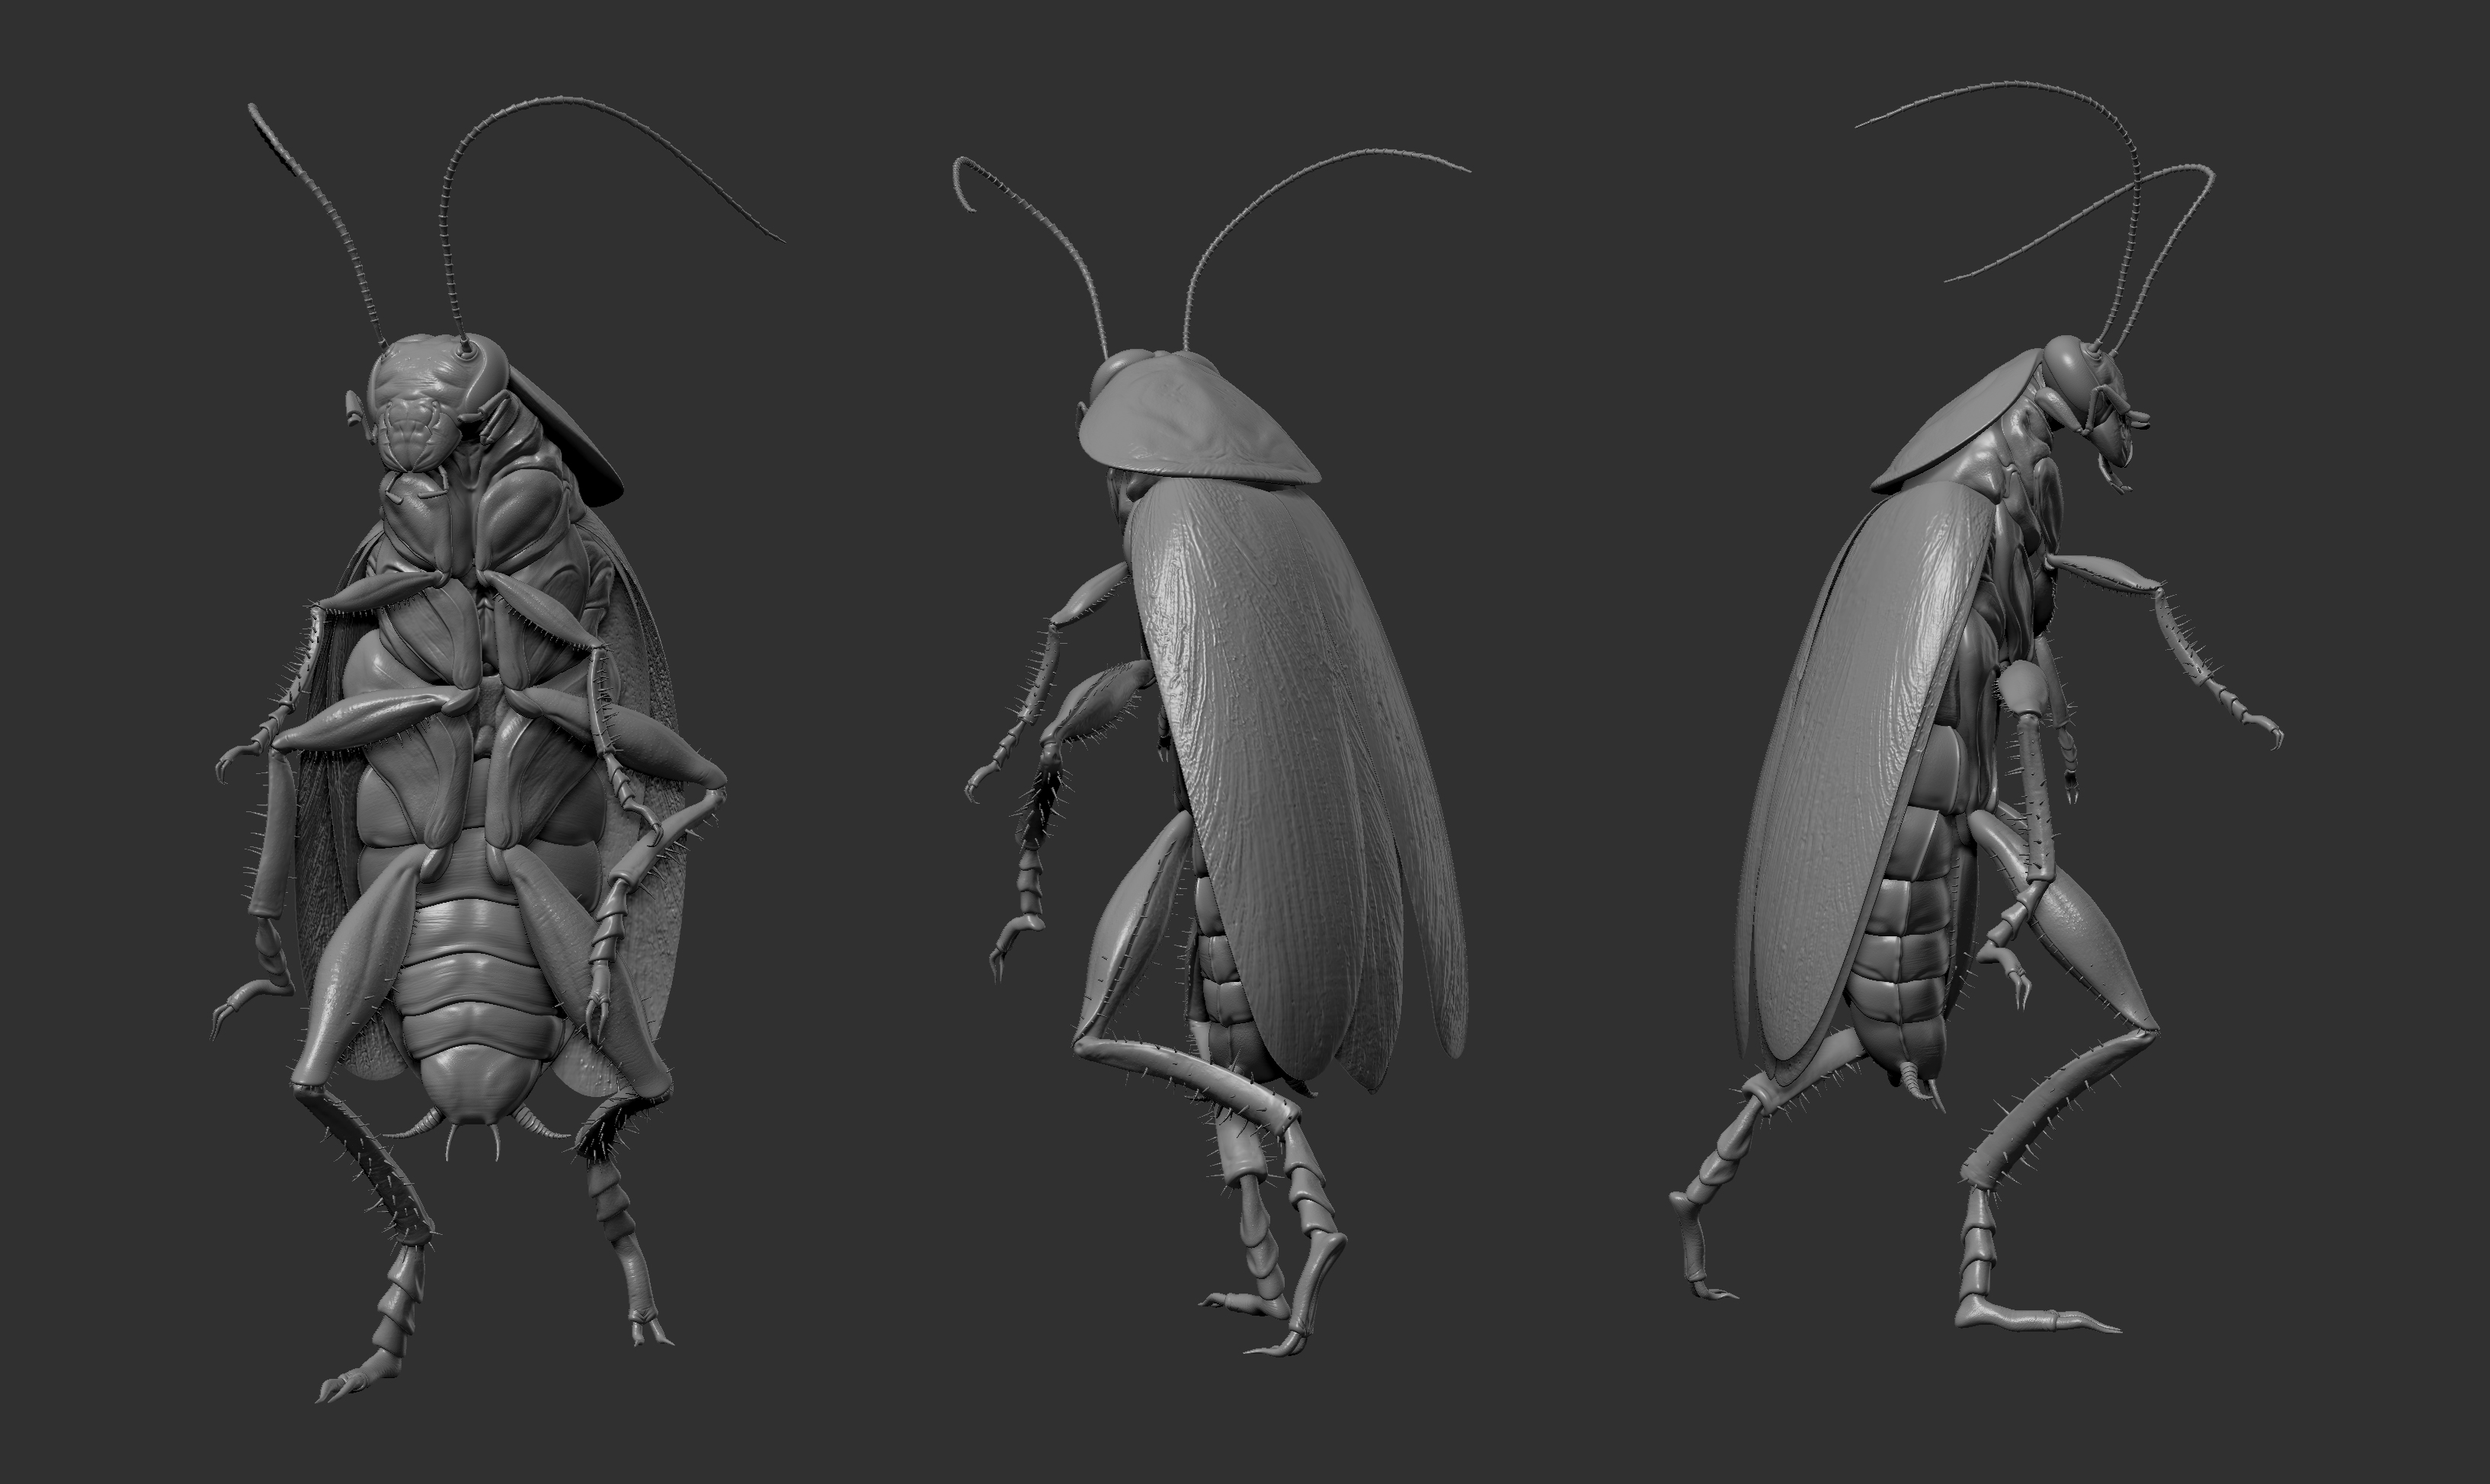 Cockroach-sculpture-01.jpg